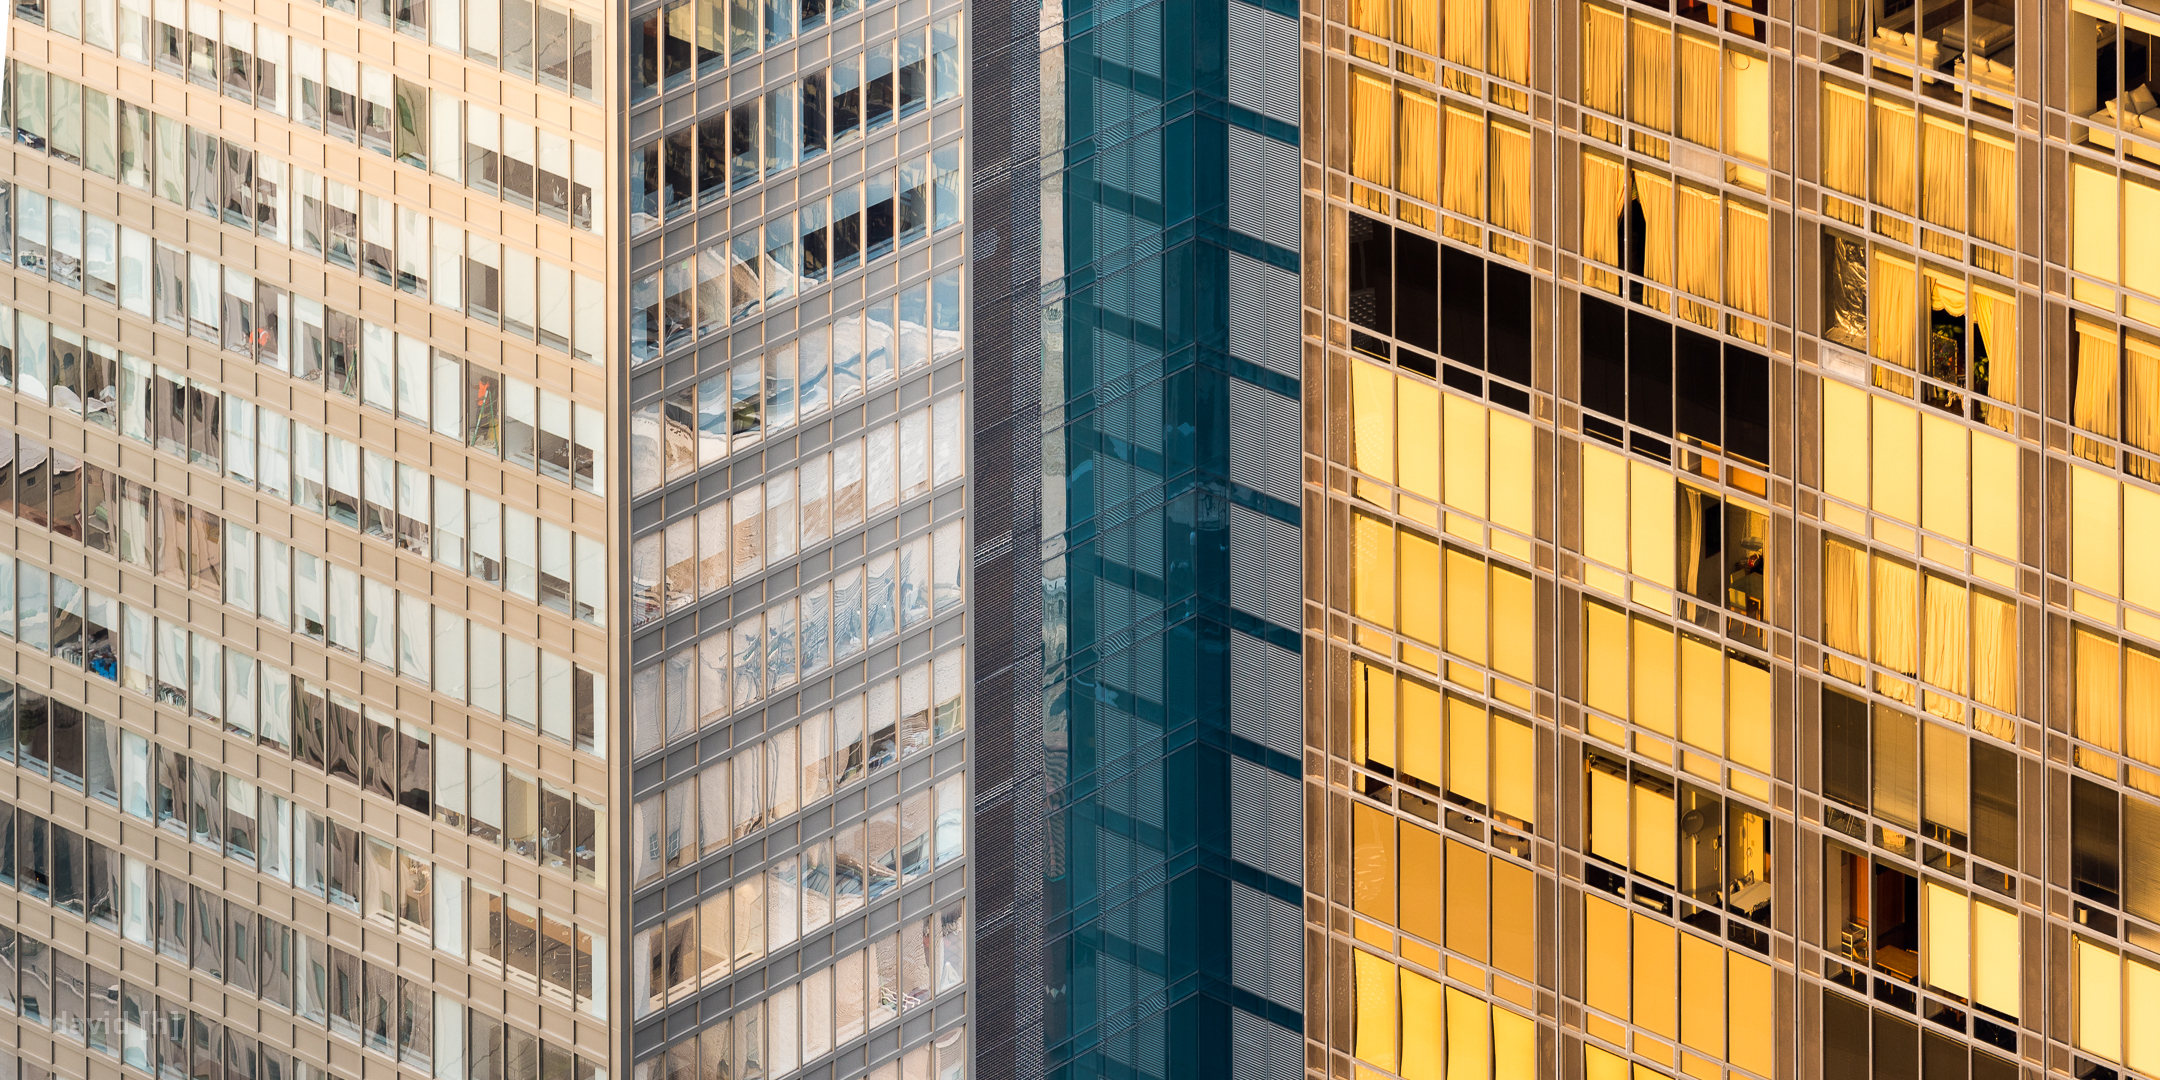 Detail shots of building exteriors - such as this image - were one focus of my time in New York.